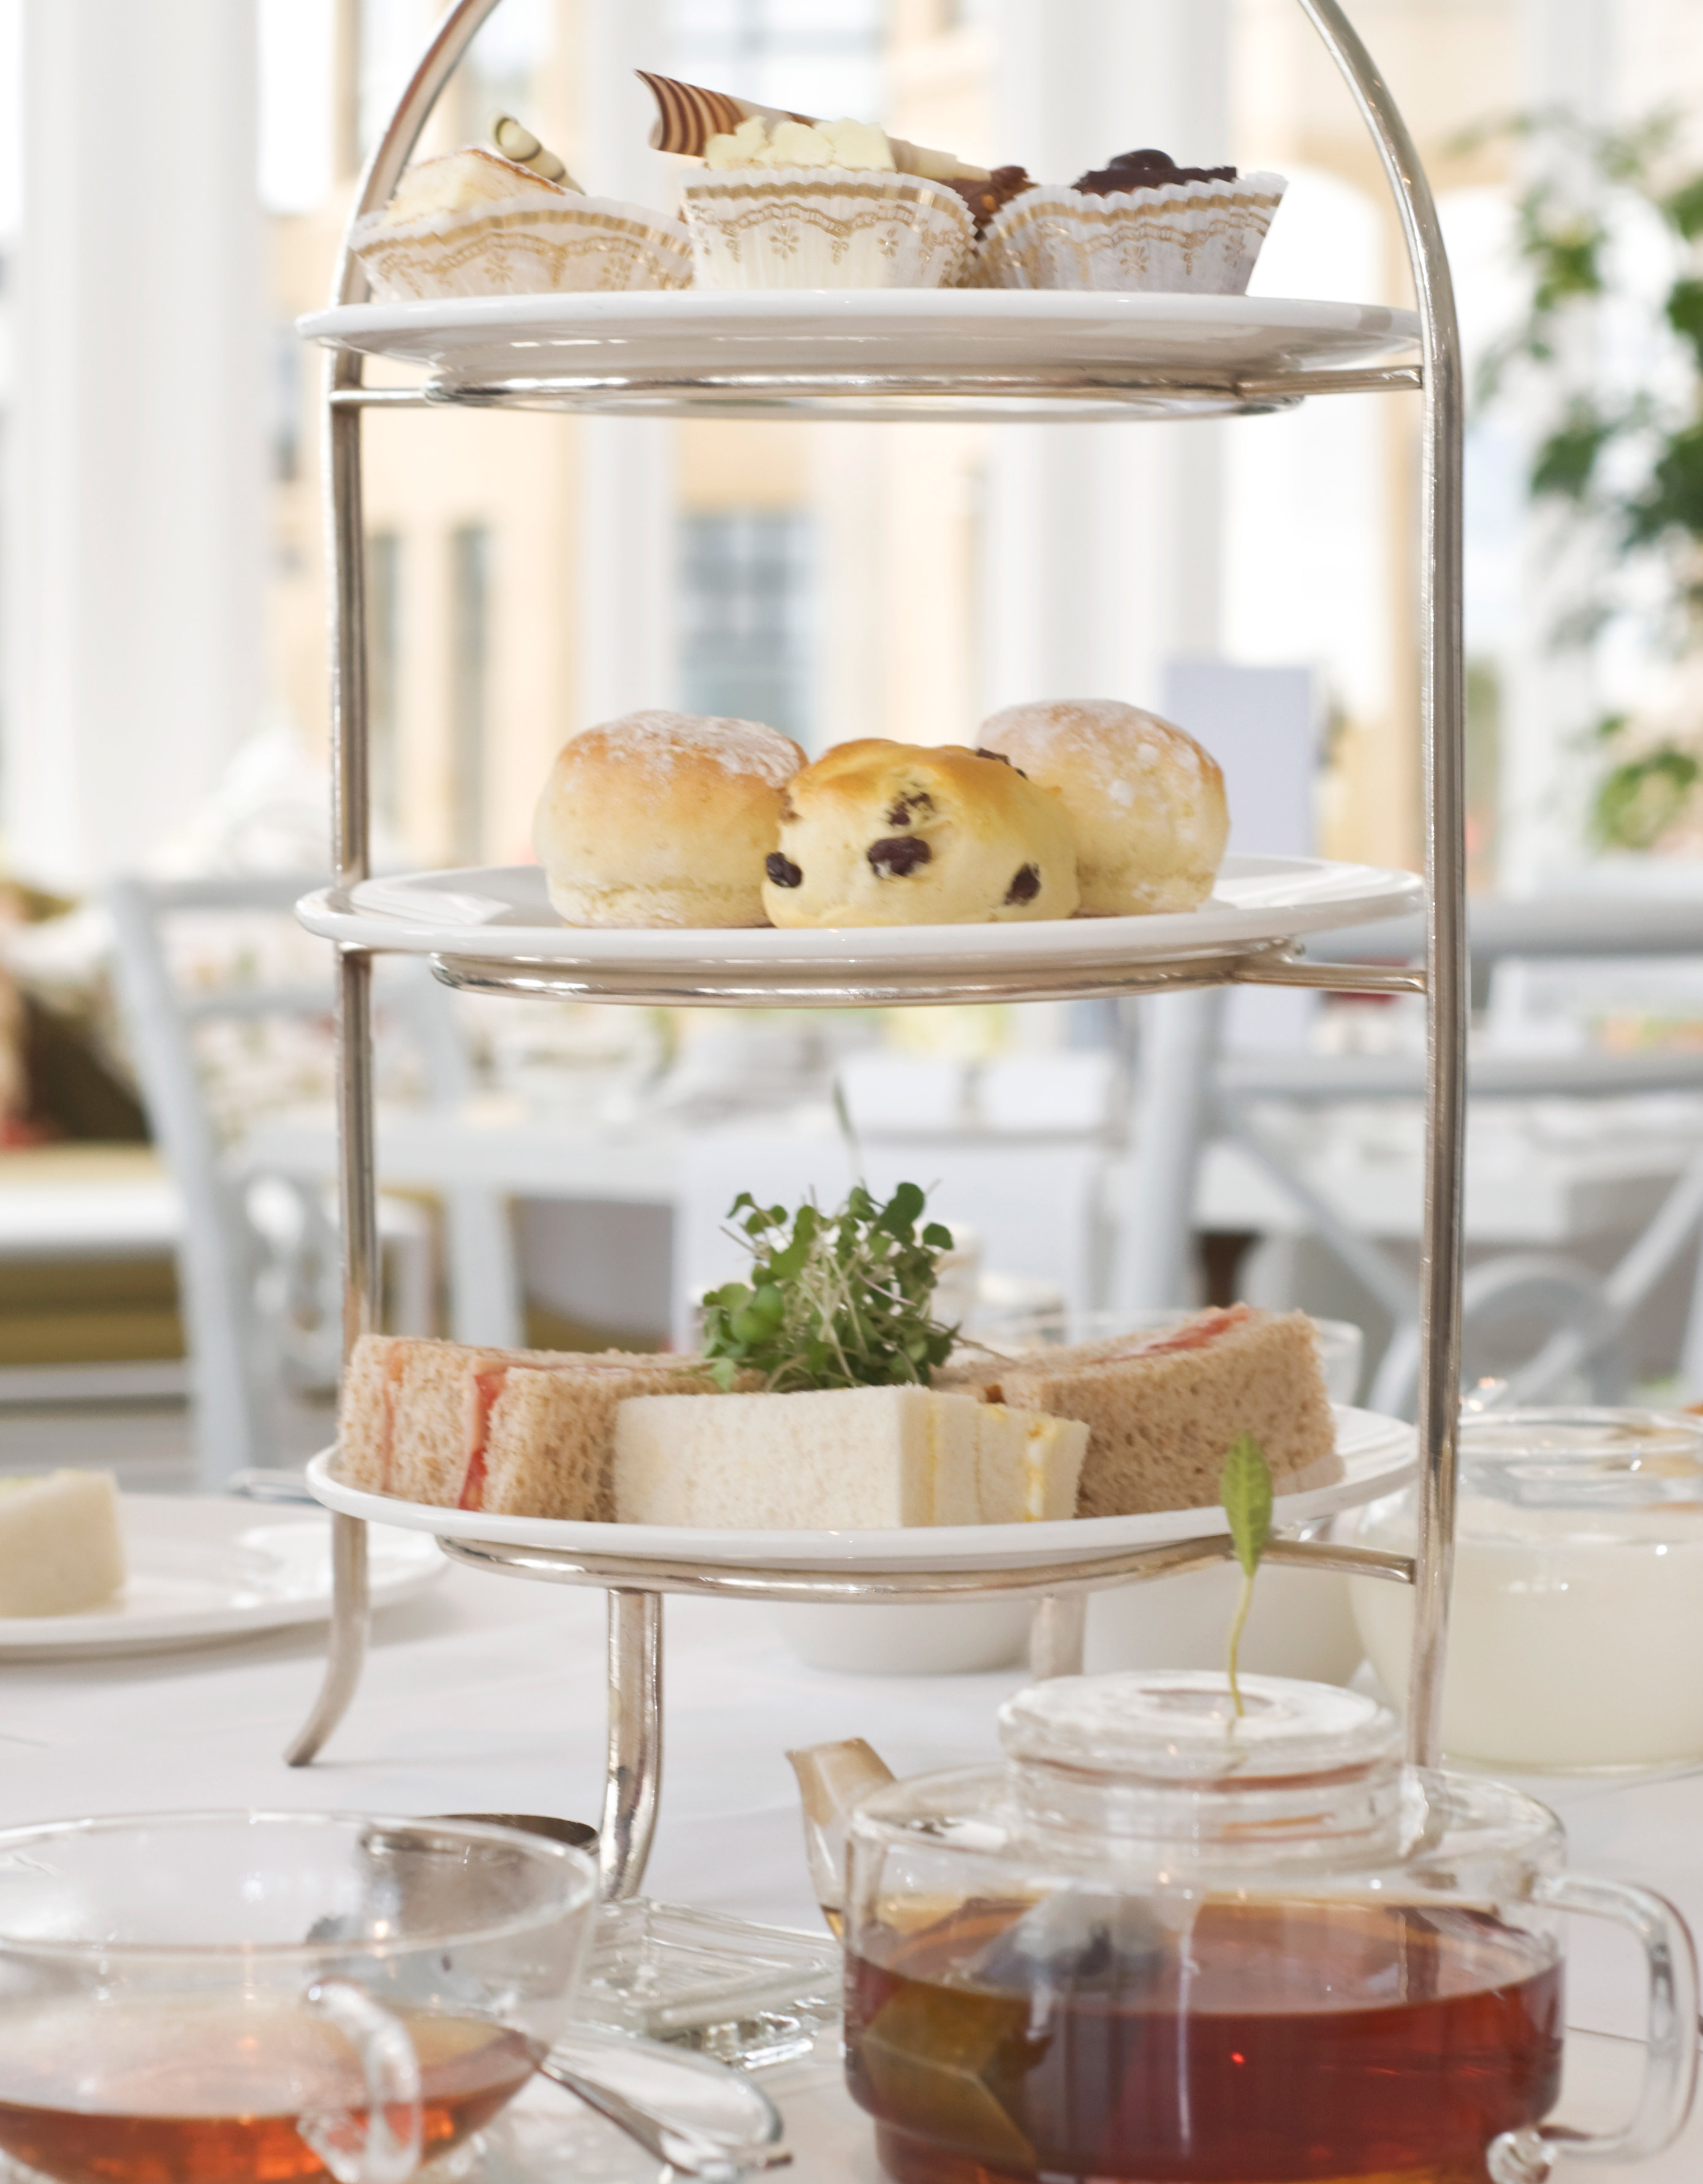 Image of Afternoon Tea at the Old Course Hotel